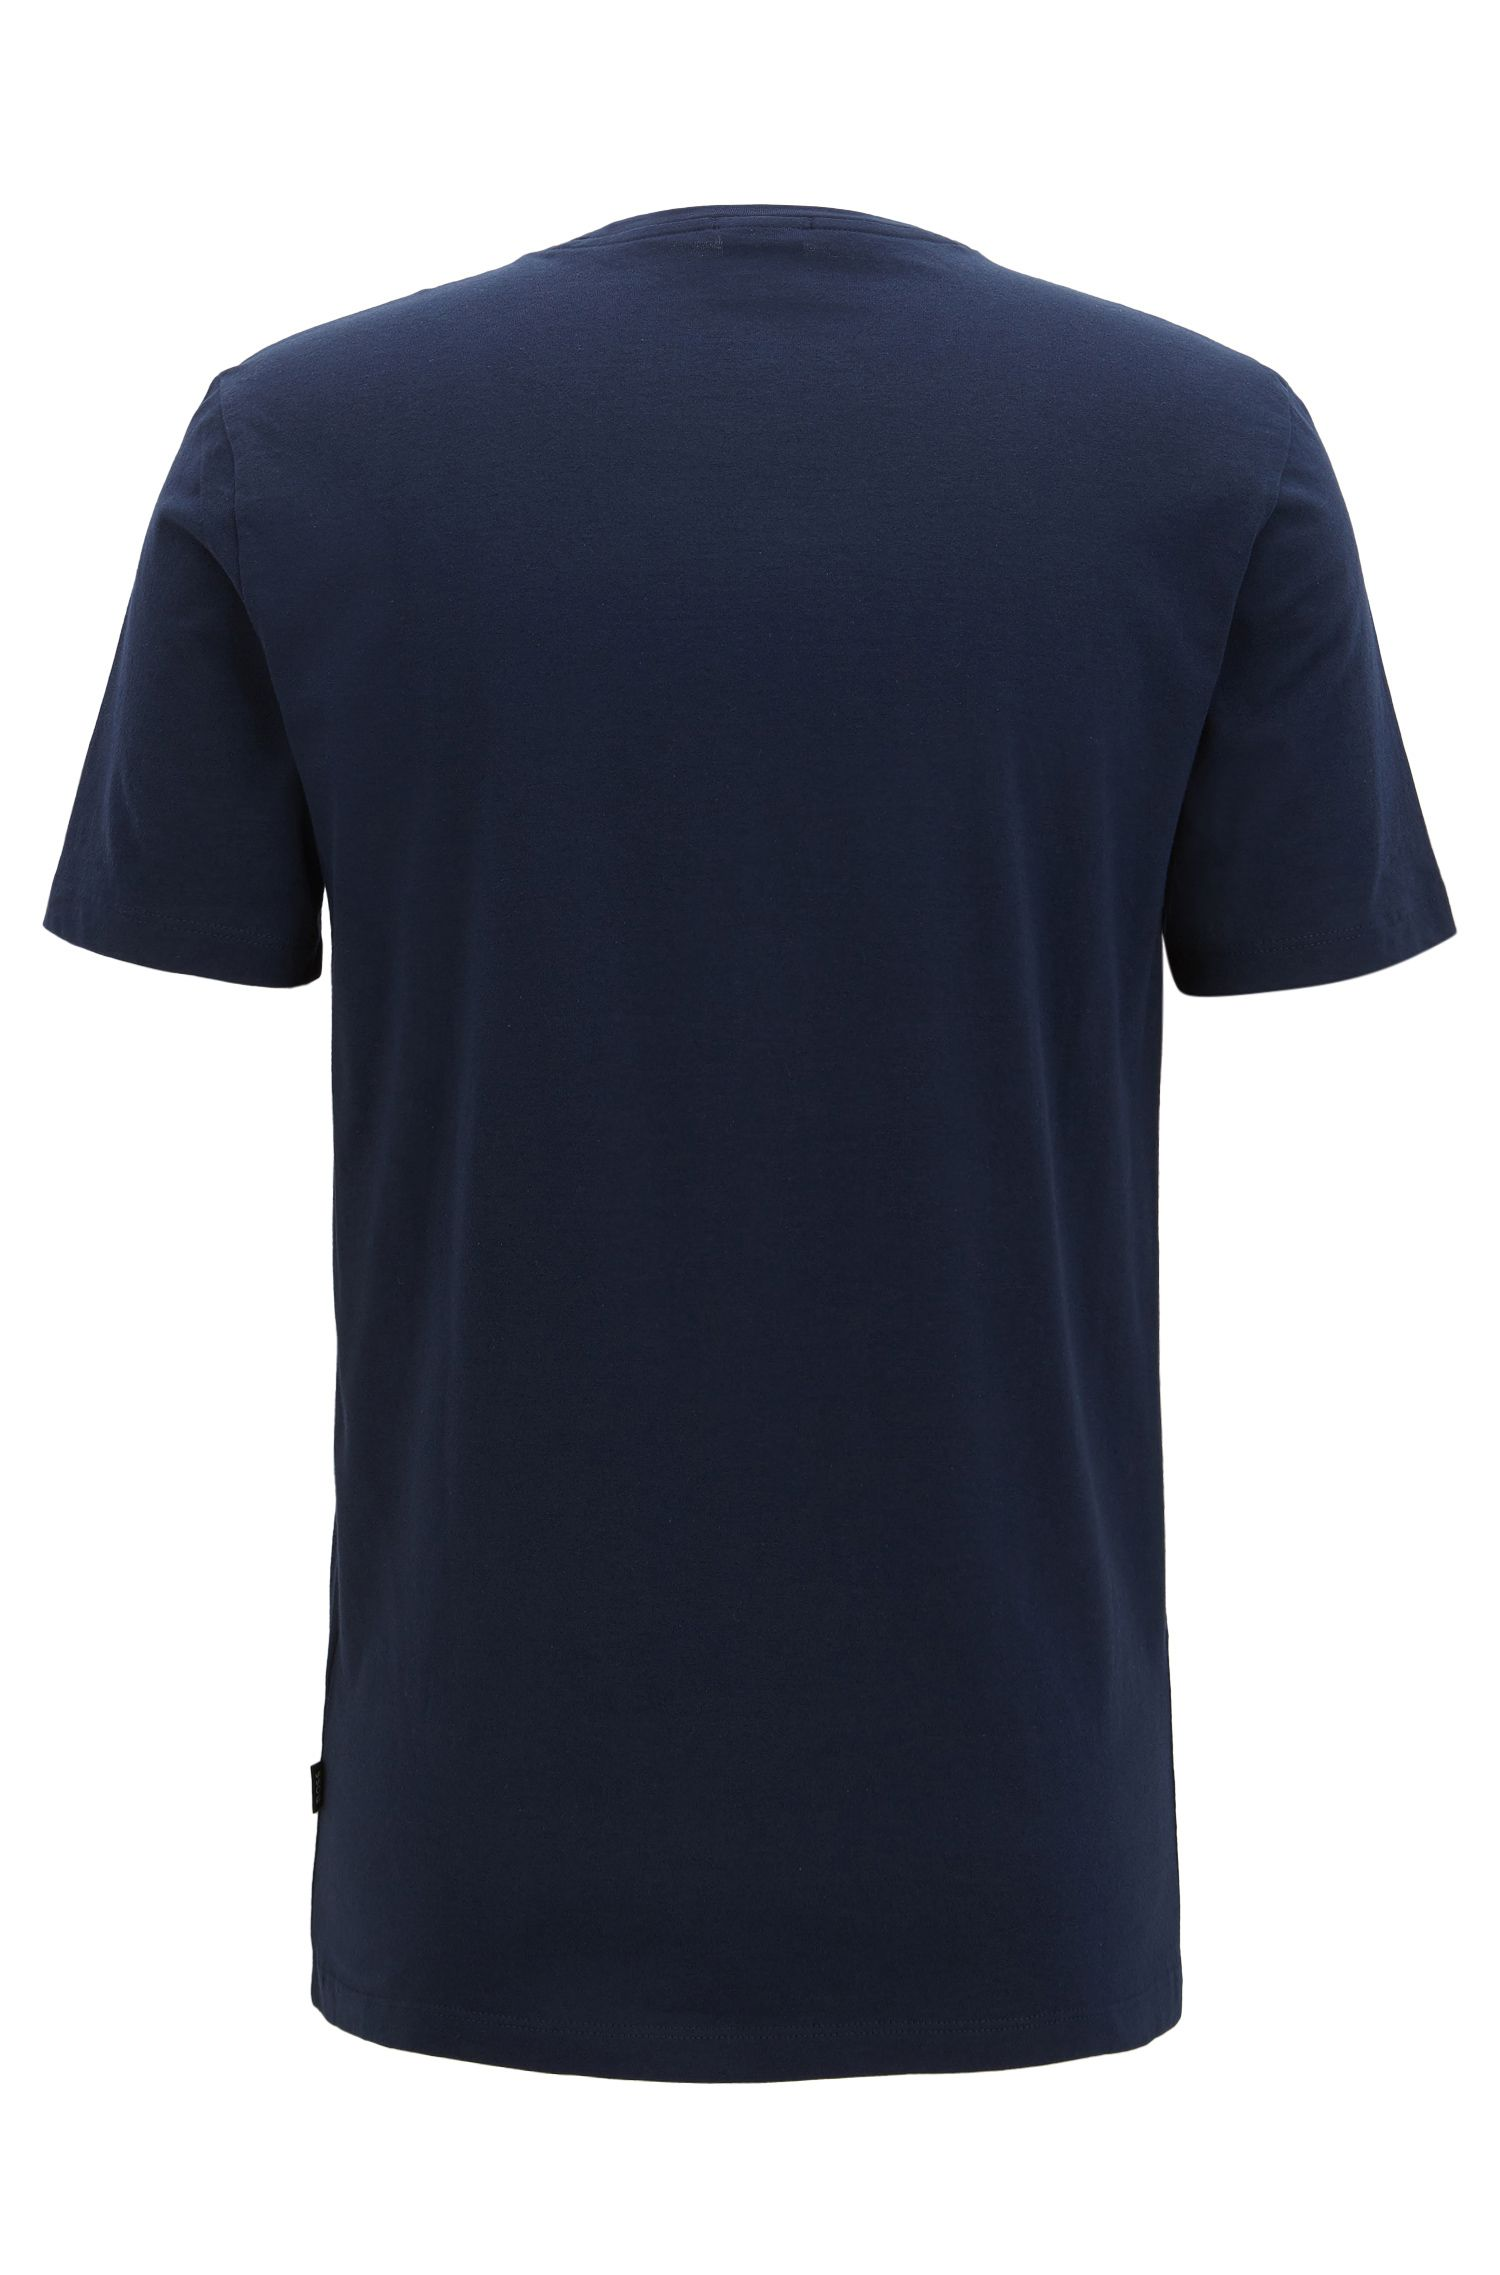 Slim-fit printed T-shirt in Pima cotton